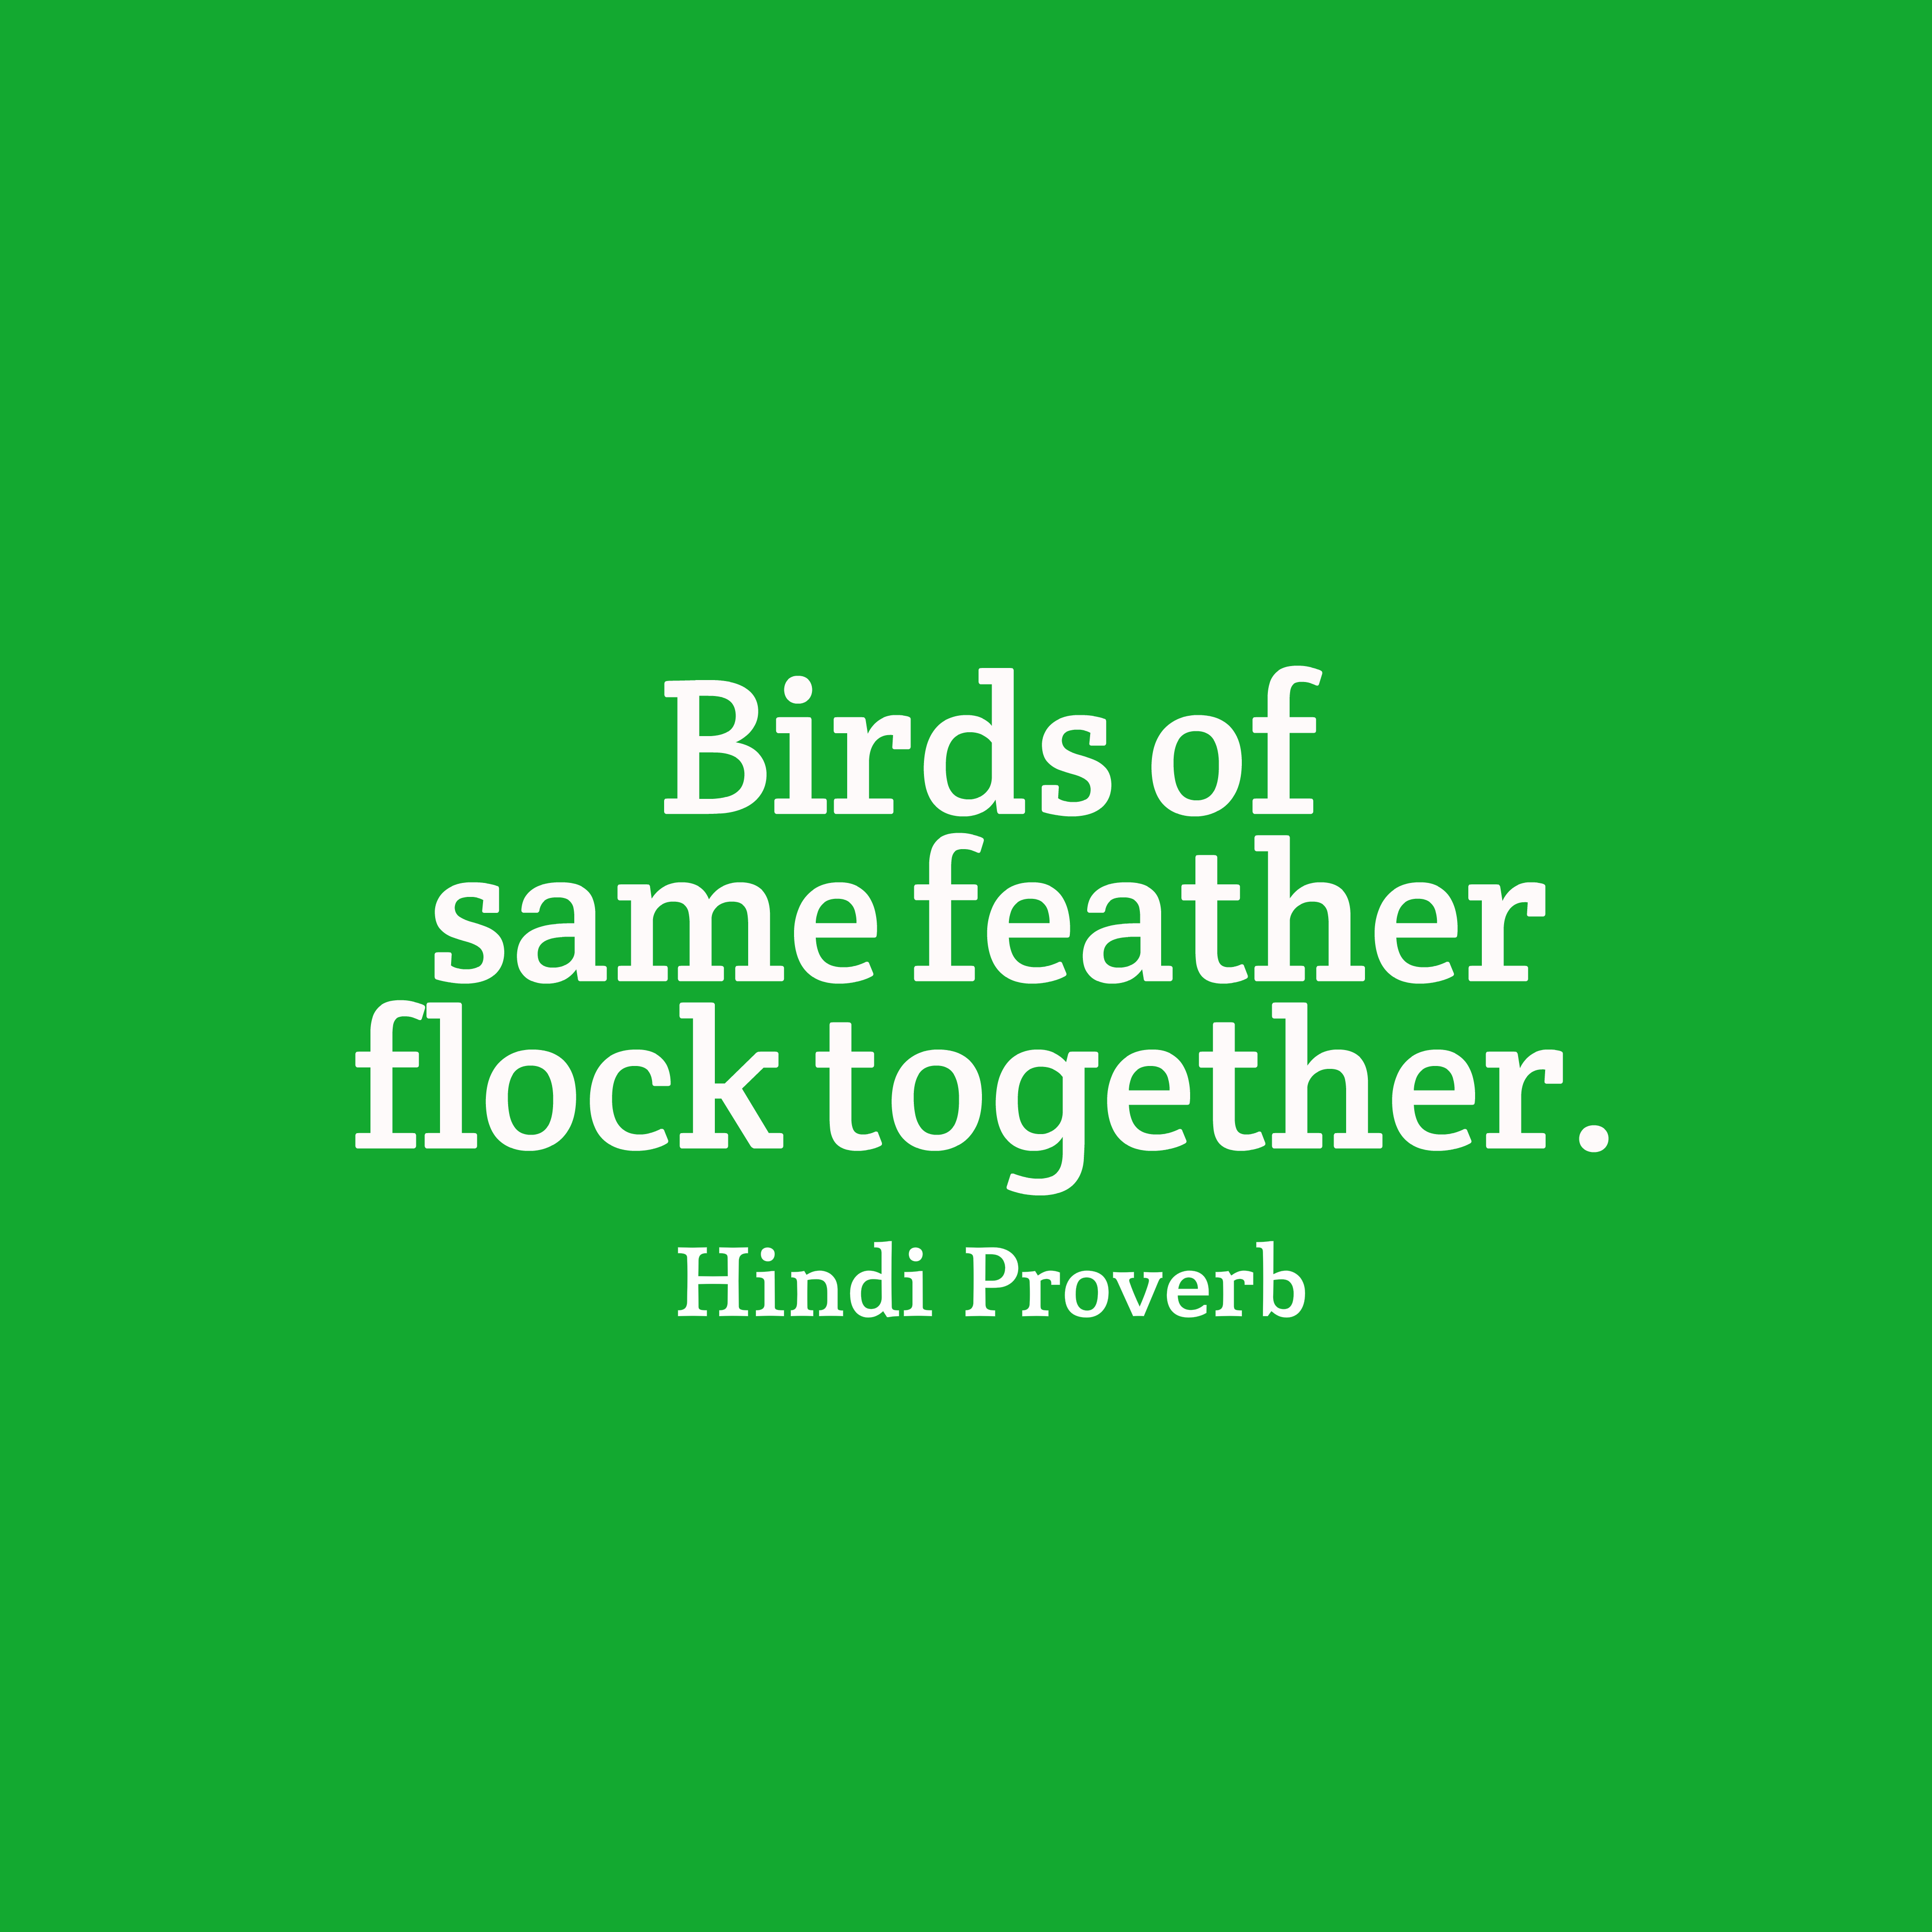 Quotes image of Birds of same feather flock together.